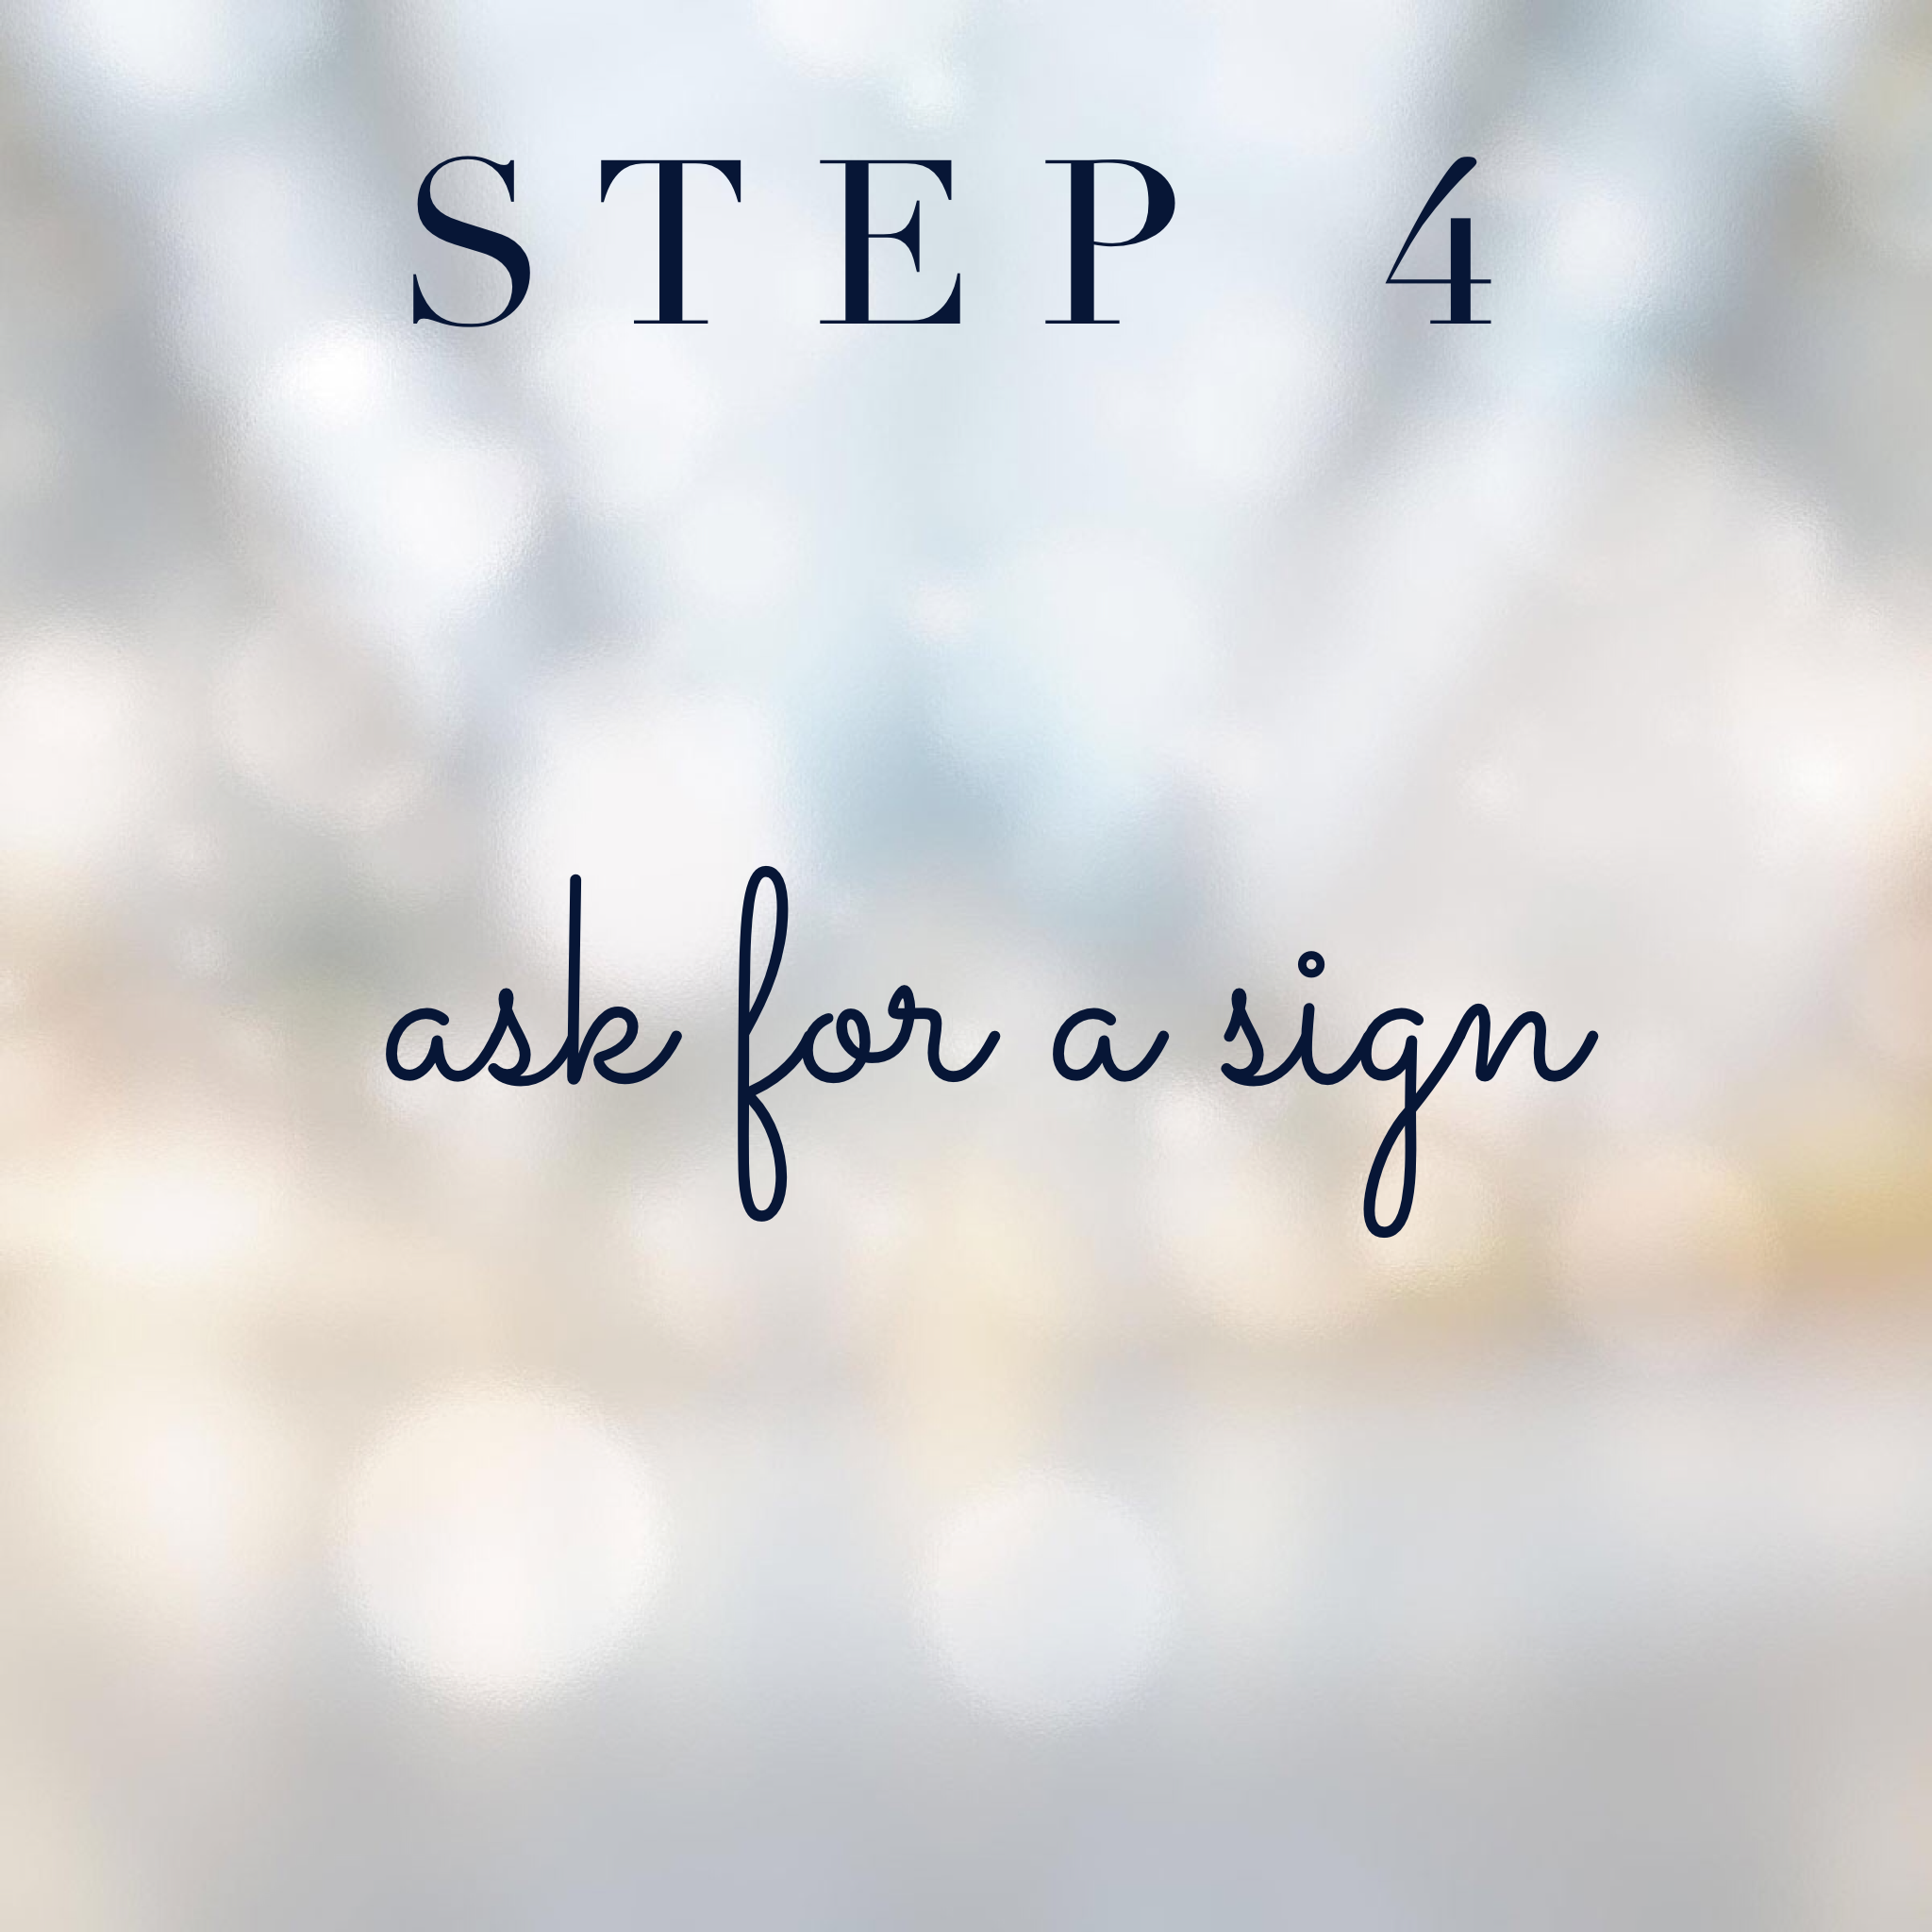 Connect with your spirit guides step 4: Ask for a sign